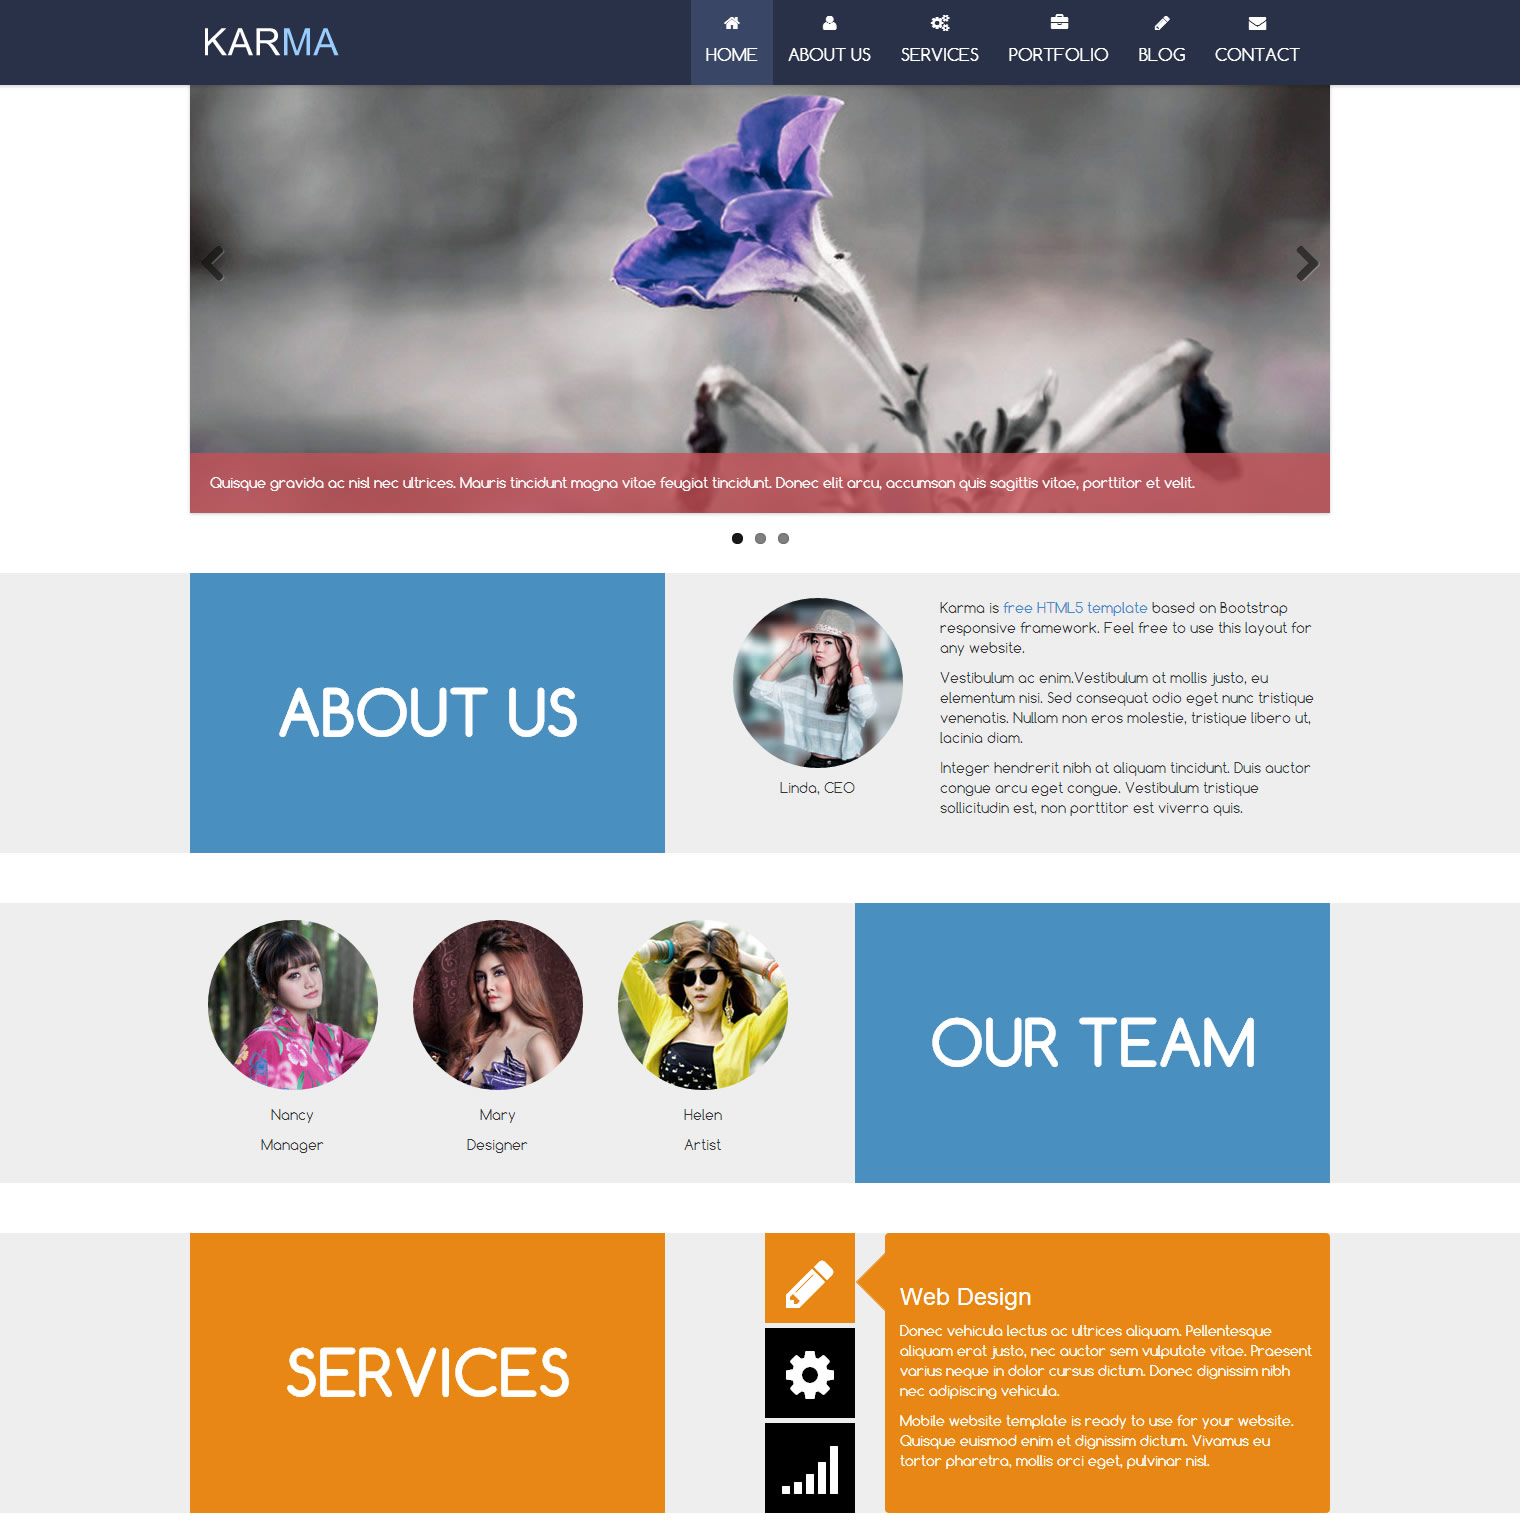 Mobile Website Templates - Free web site template